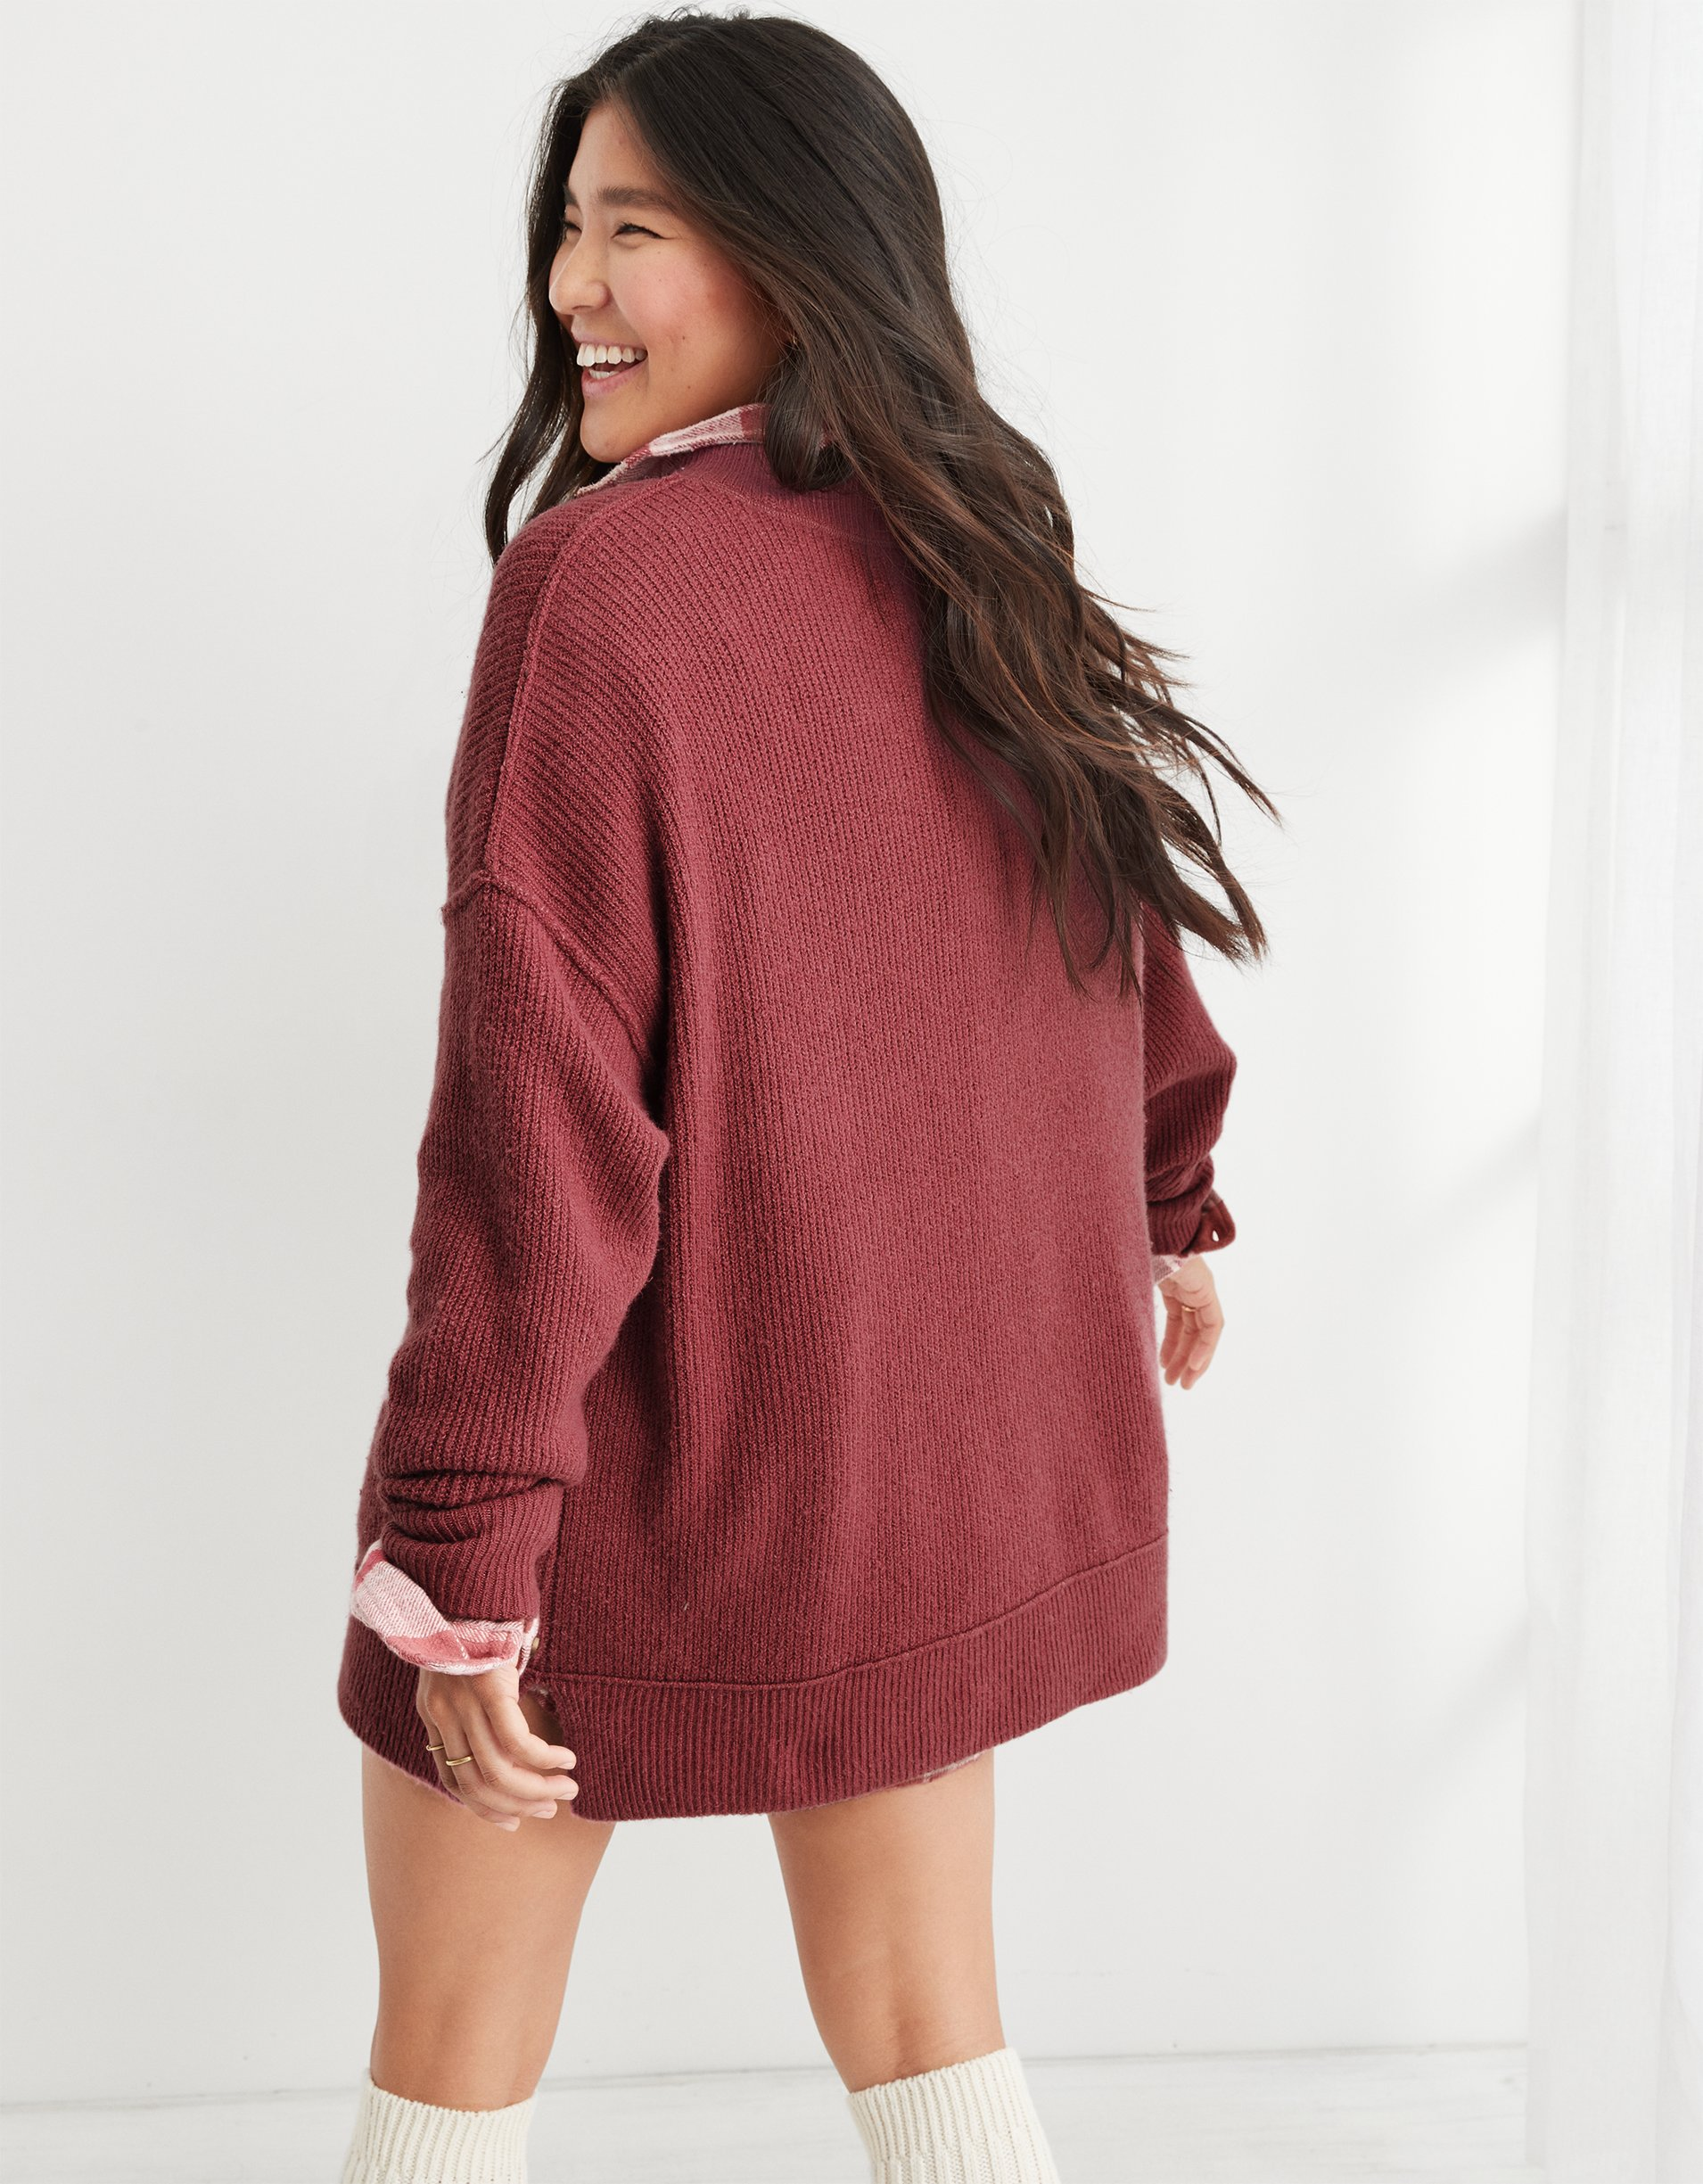 Aerie CozyUp Ribbed Favorite Fall Sweaters